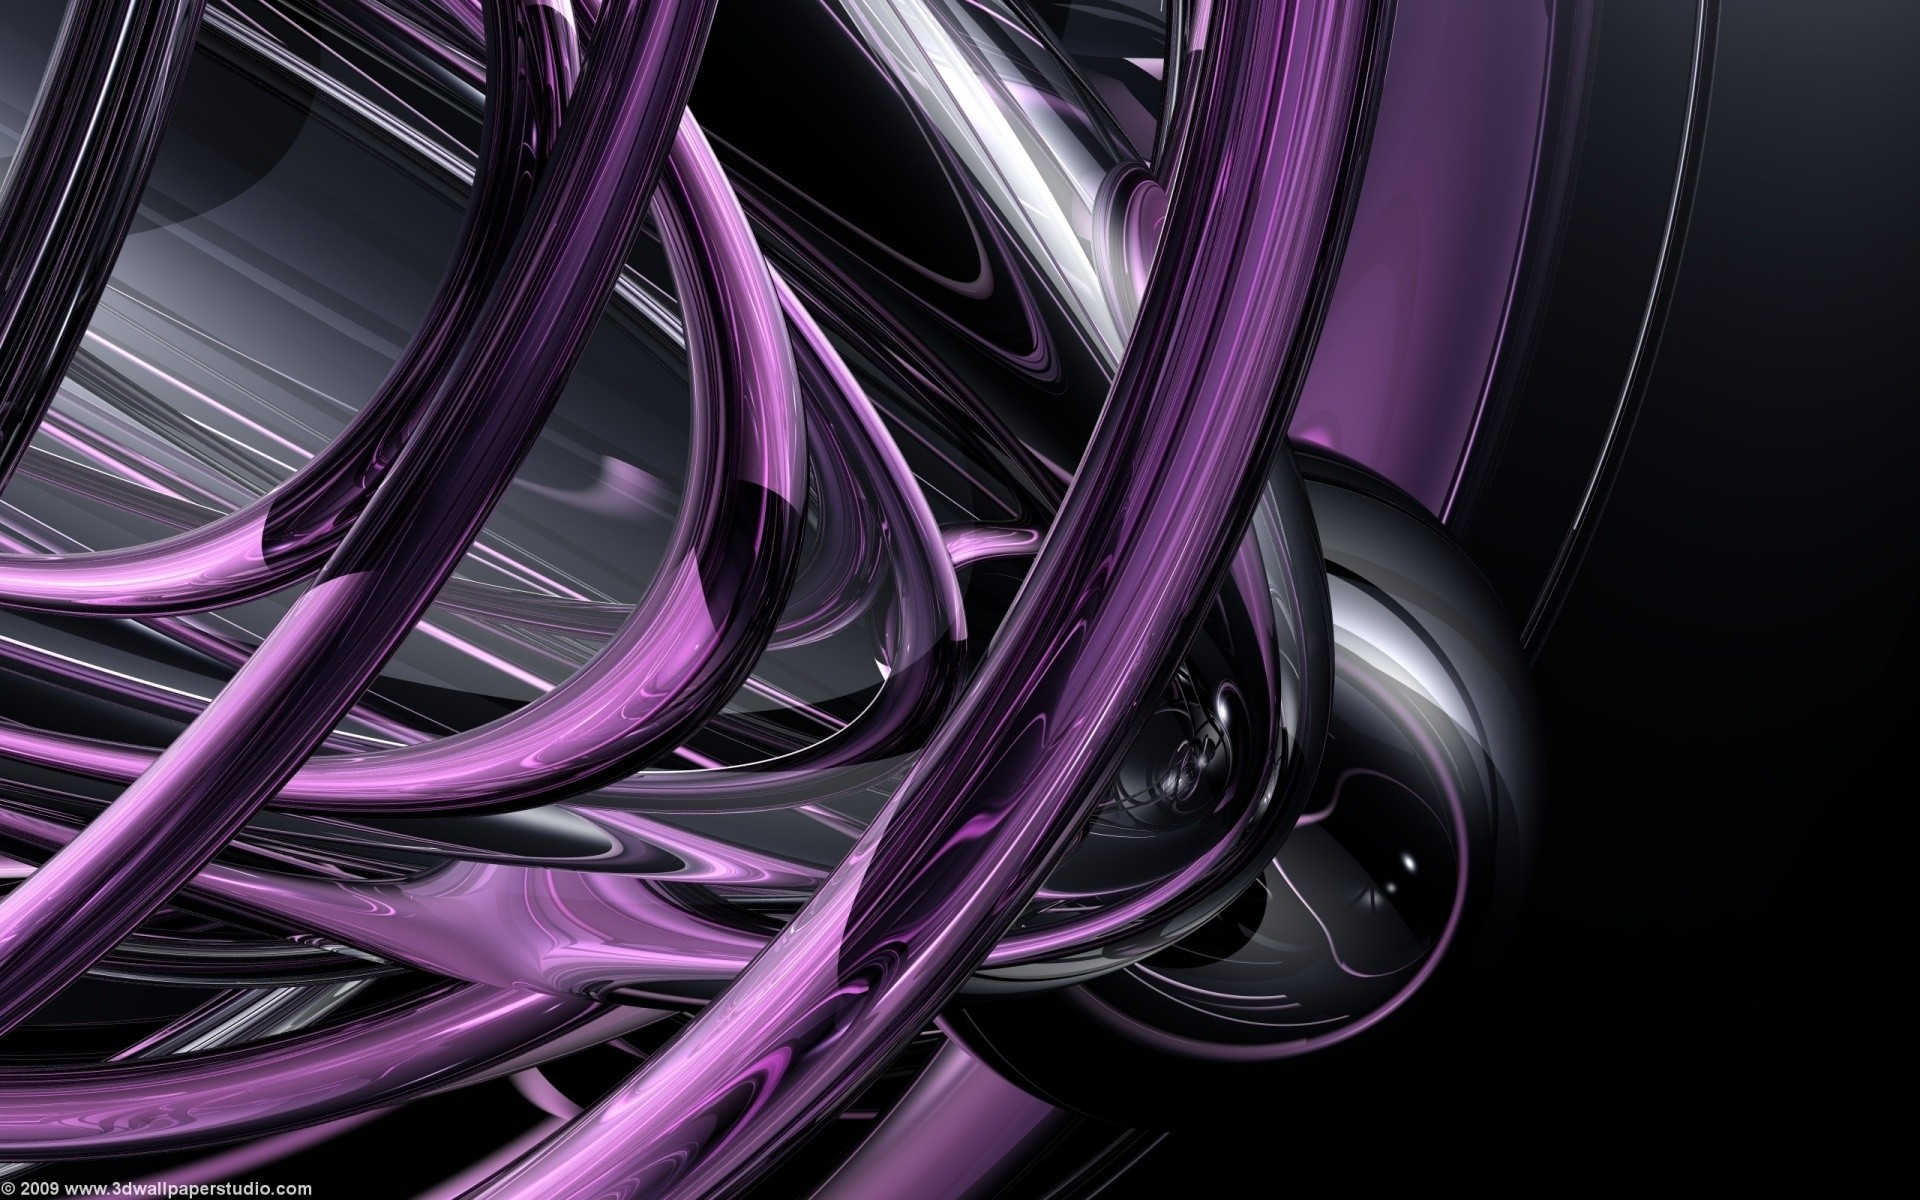 Endearing Abstract 3D Wallpaper 3d 1080p HD Wallpaper 1920×1080 .